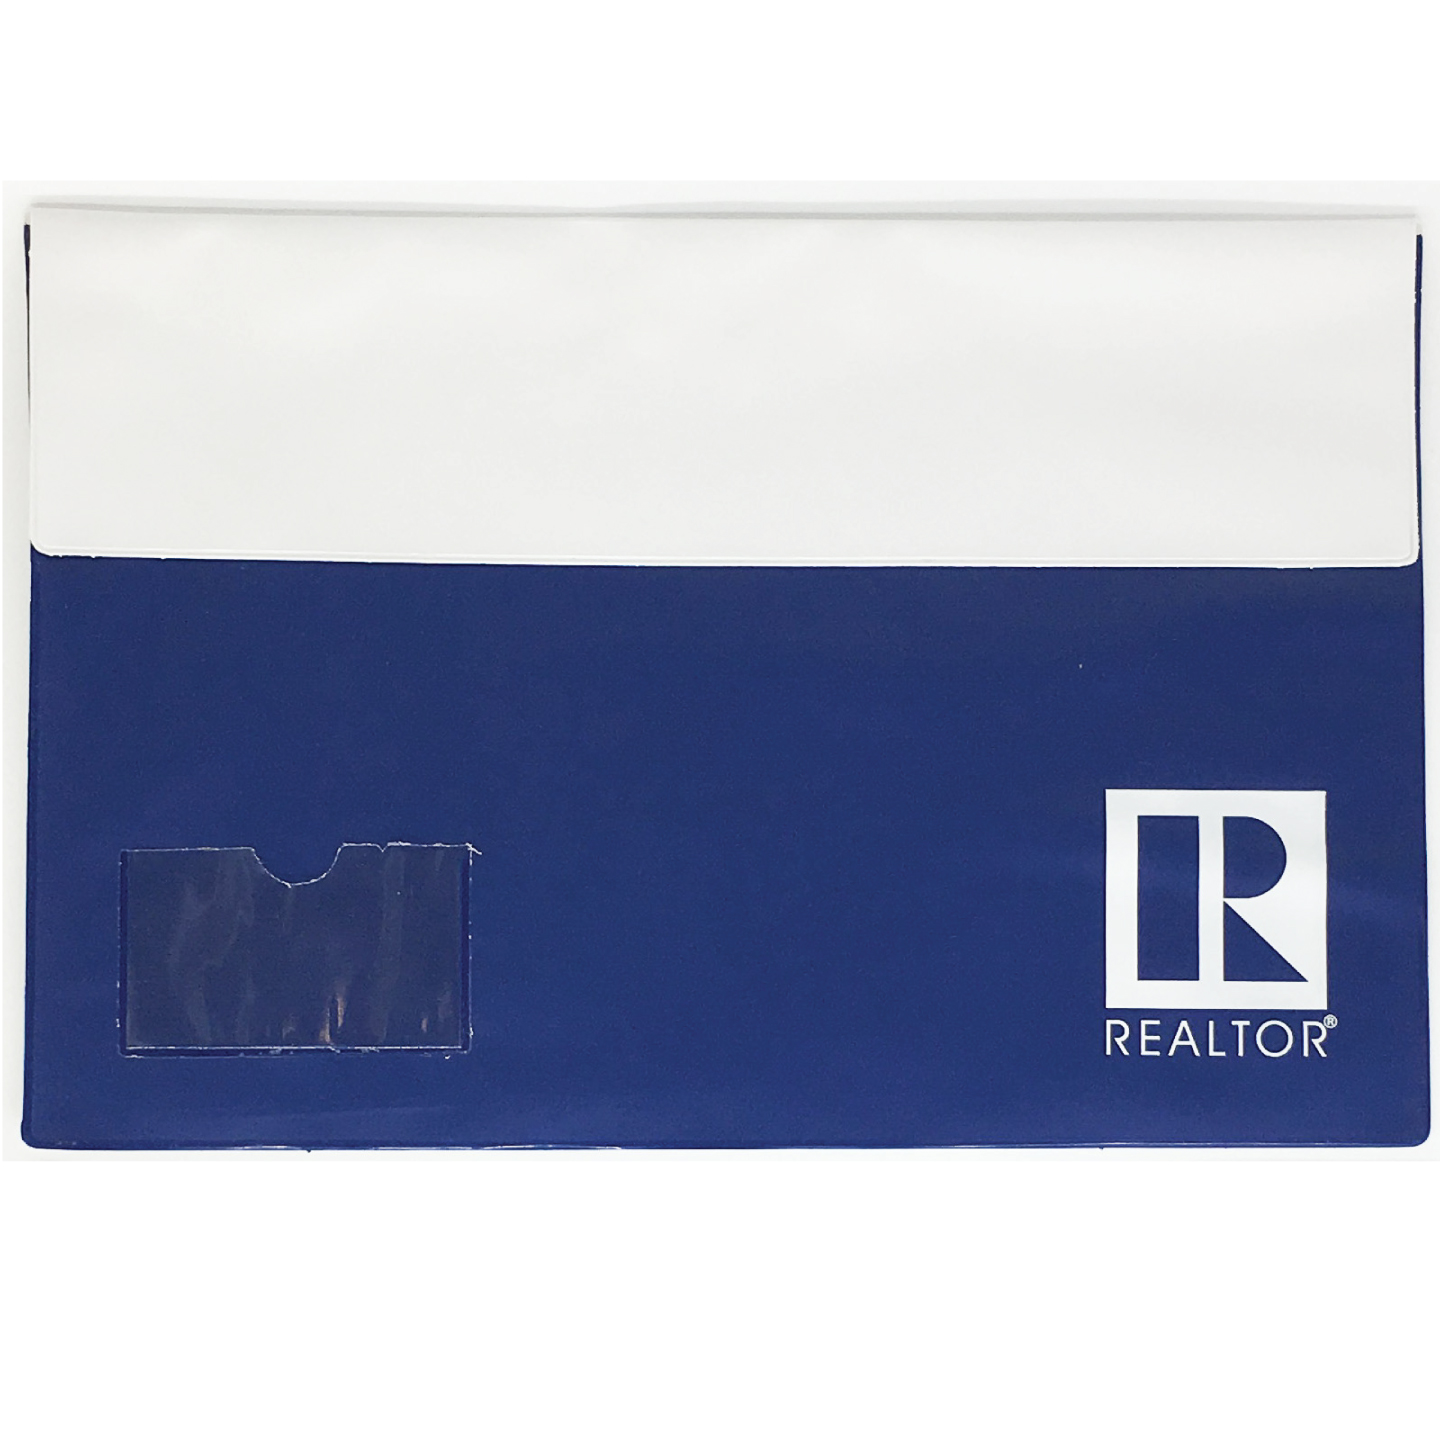 Realtor two tone legal vinyl folio with business card case rts4679 colourmoves